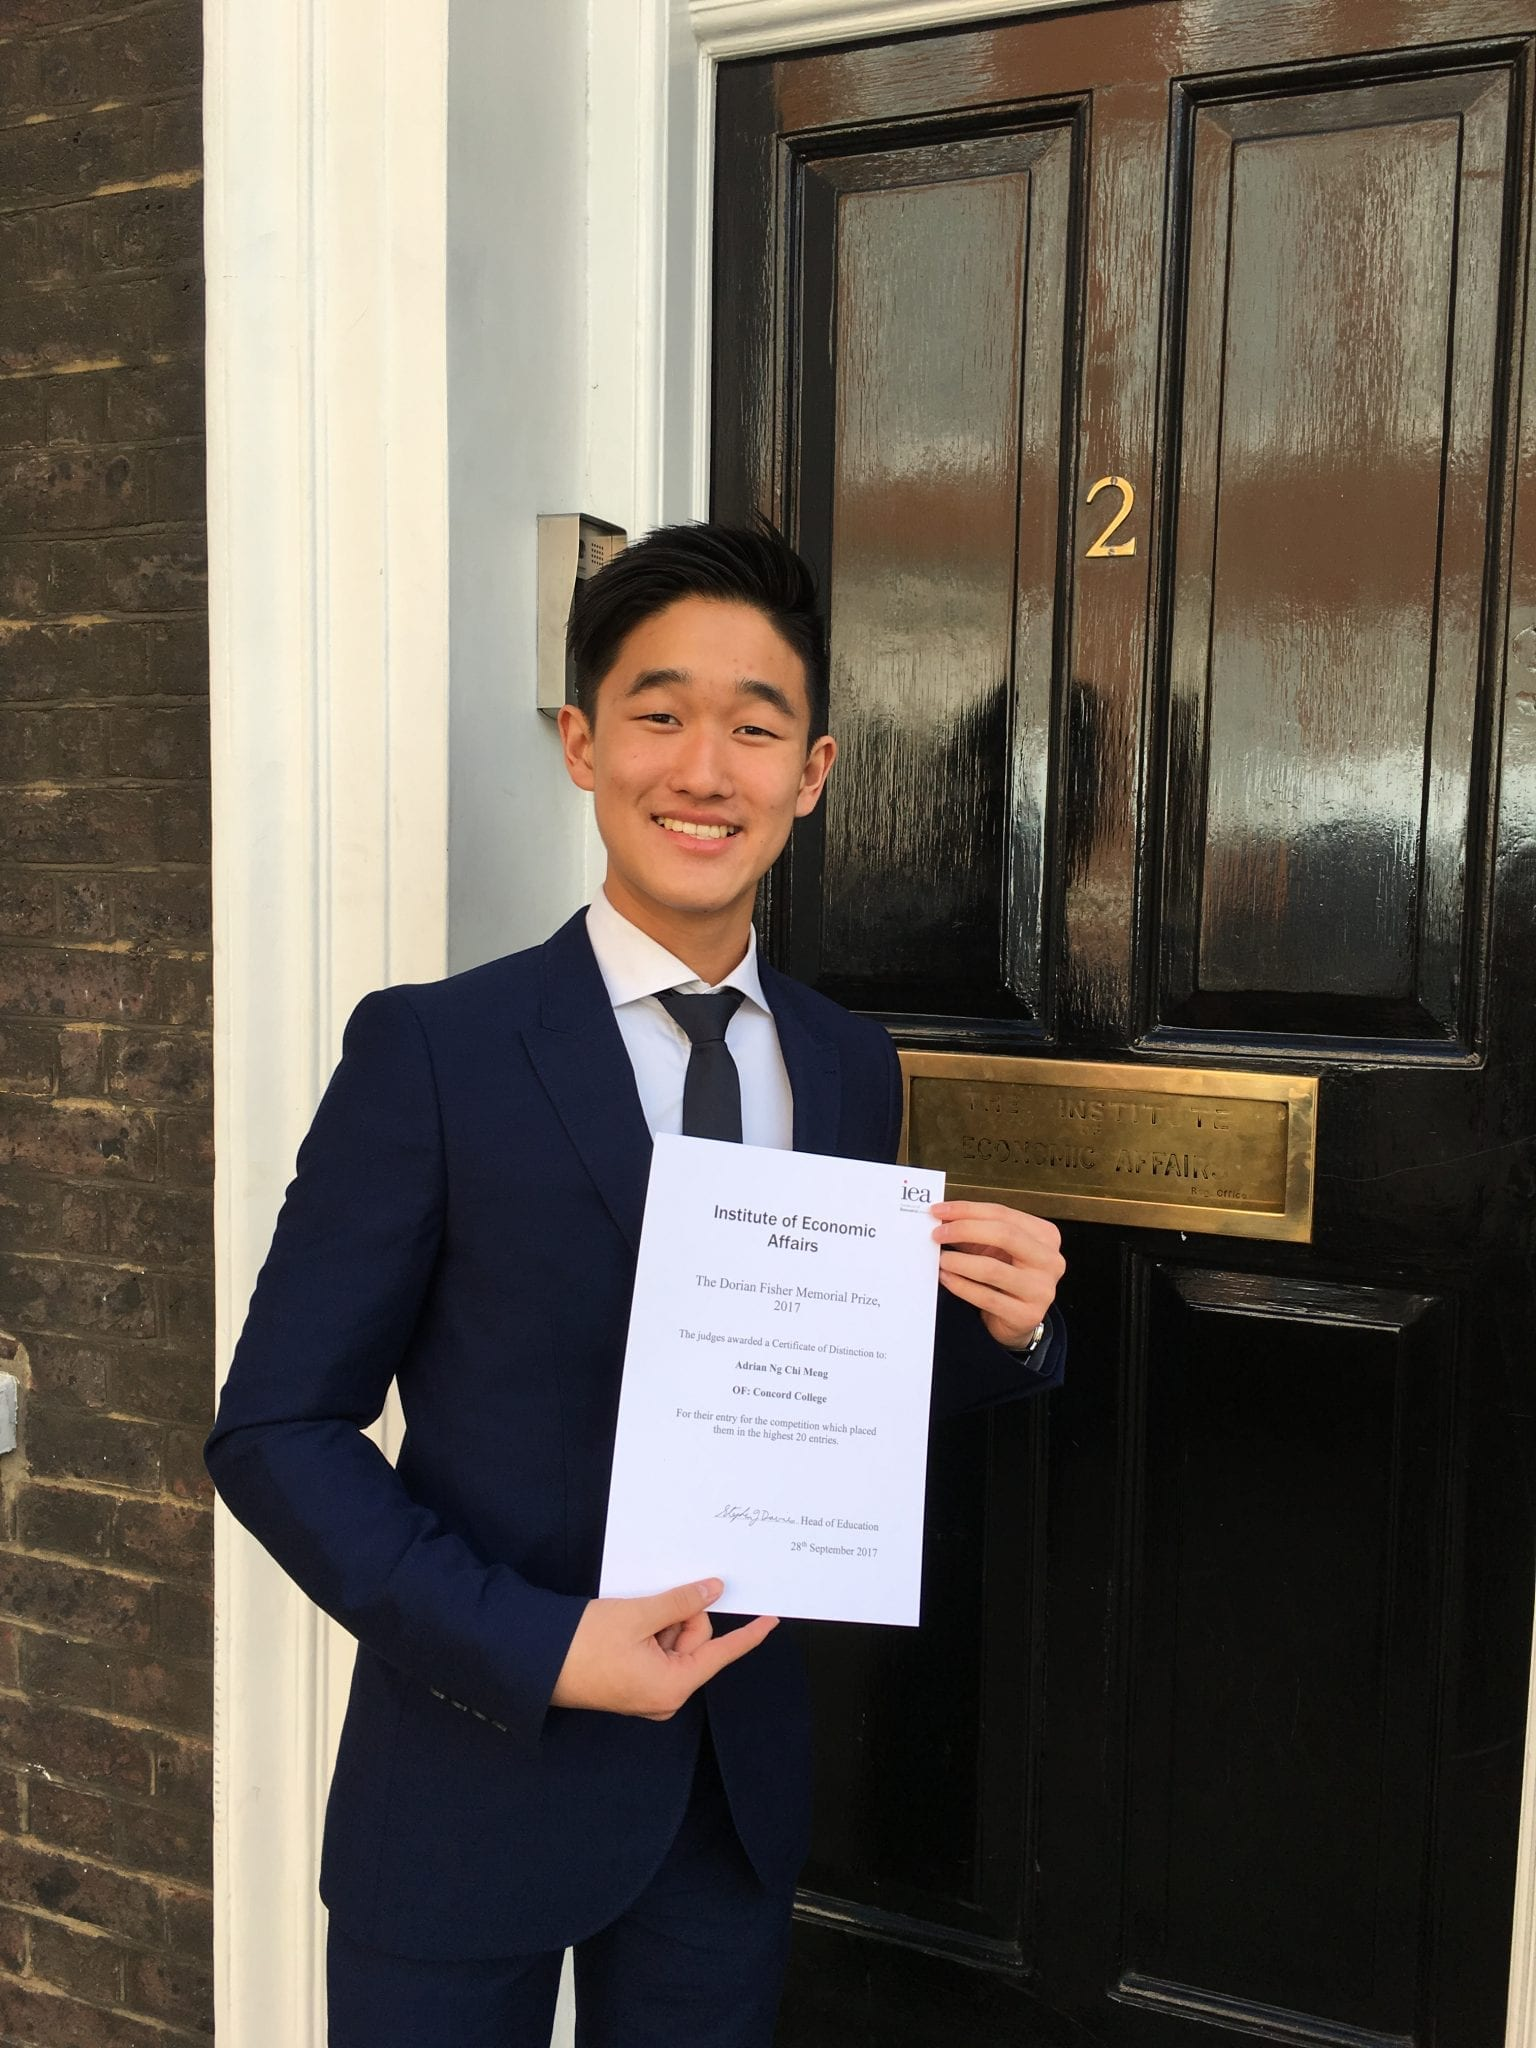 concord student s essay success in iea competition concord college concord sixth form student adrian ng has ed london to attend a prize giving event for an essay he has written he was awarded a certificate at a